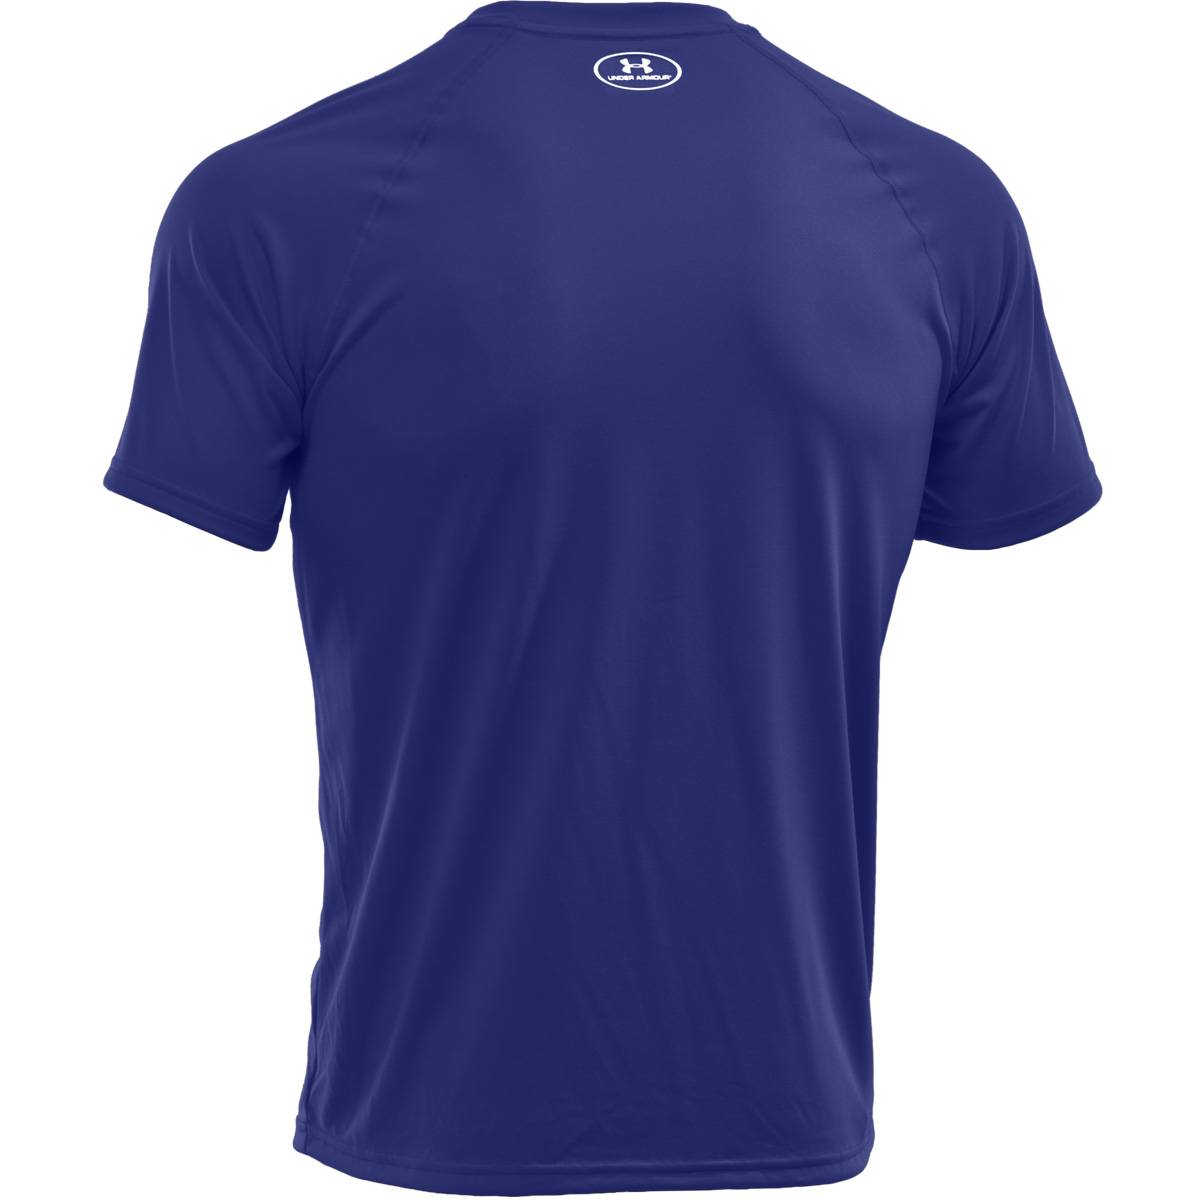 Under-Armour-Mens-UA-Tech-SS-T-Shirt-HeatGear-Training-31-OFF-RRP thumbnail 82